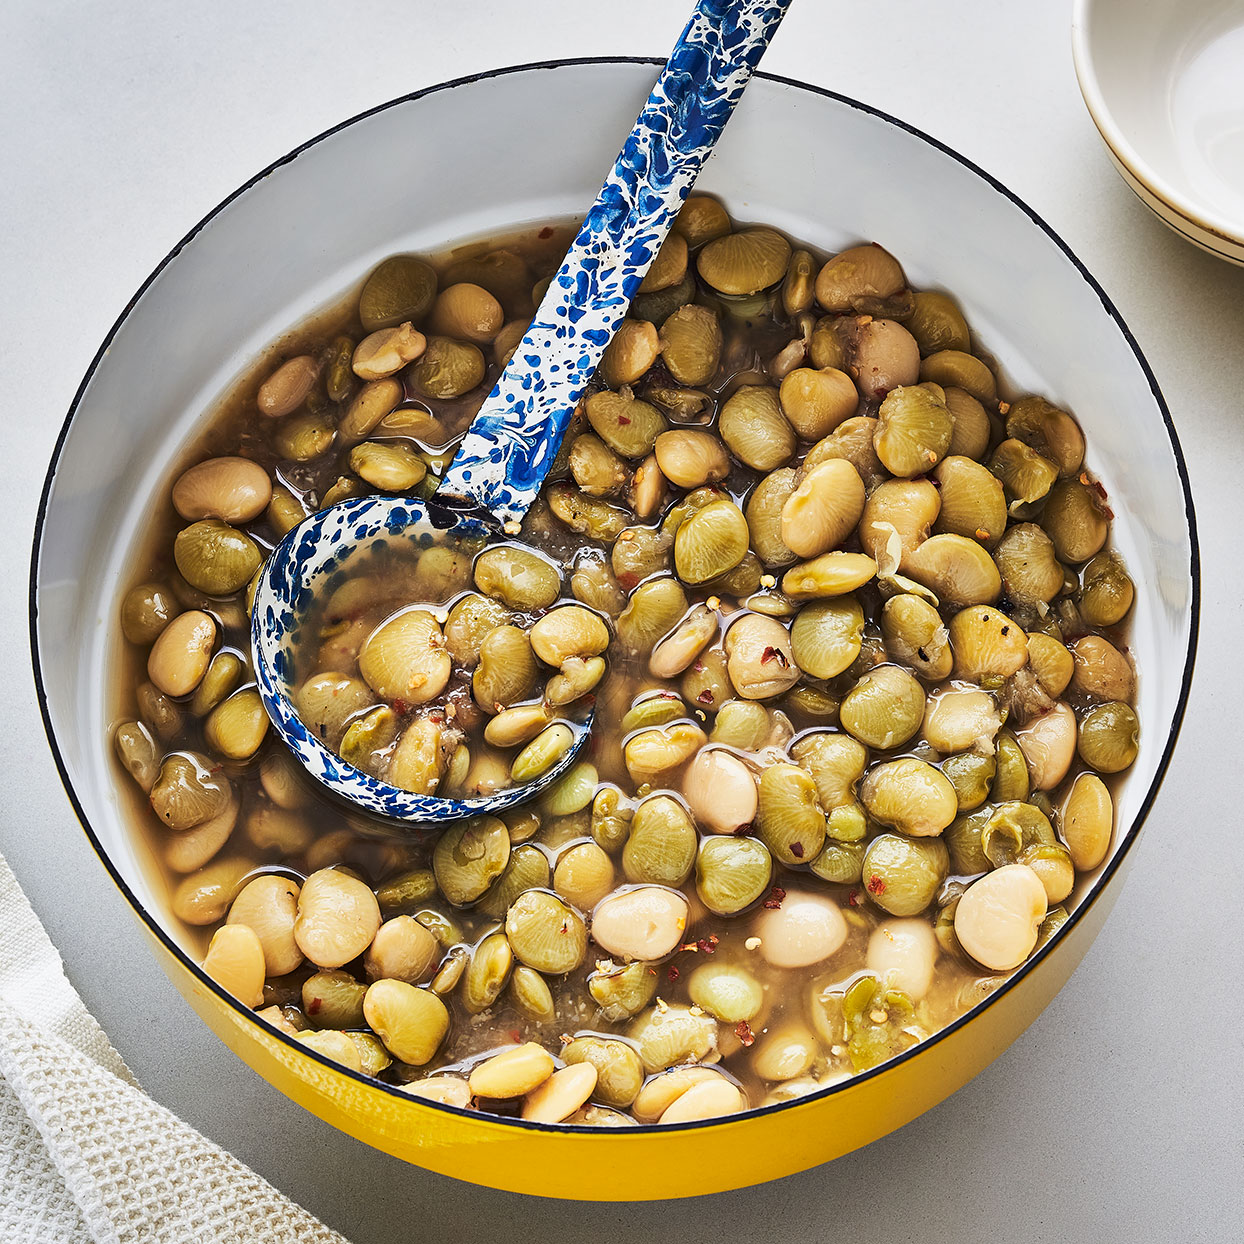 This lima bean recipe is the creation of Mable Clarke, a South Carolina cook and activist. This side dish is on the menu for Clarke's monthly fish fry that she started to save the Soapstone Baptist Church. No need for ham hocks with this recipe--her onion-rich roast turkey stock gives these humble beans a rich, savory flavor, but store-bought will also do the trick. A long, slow simmer coaxes the creaminess out of the limas.